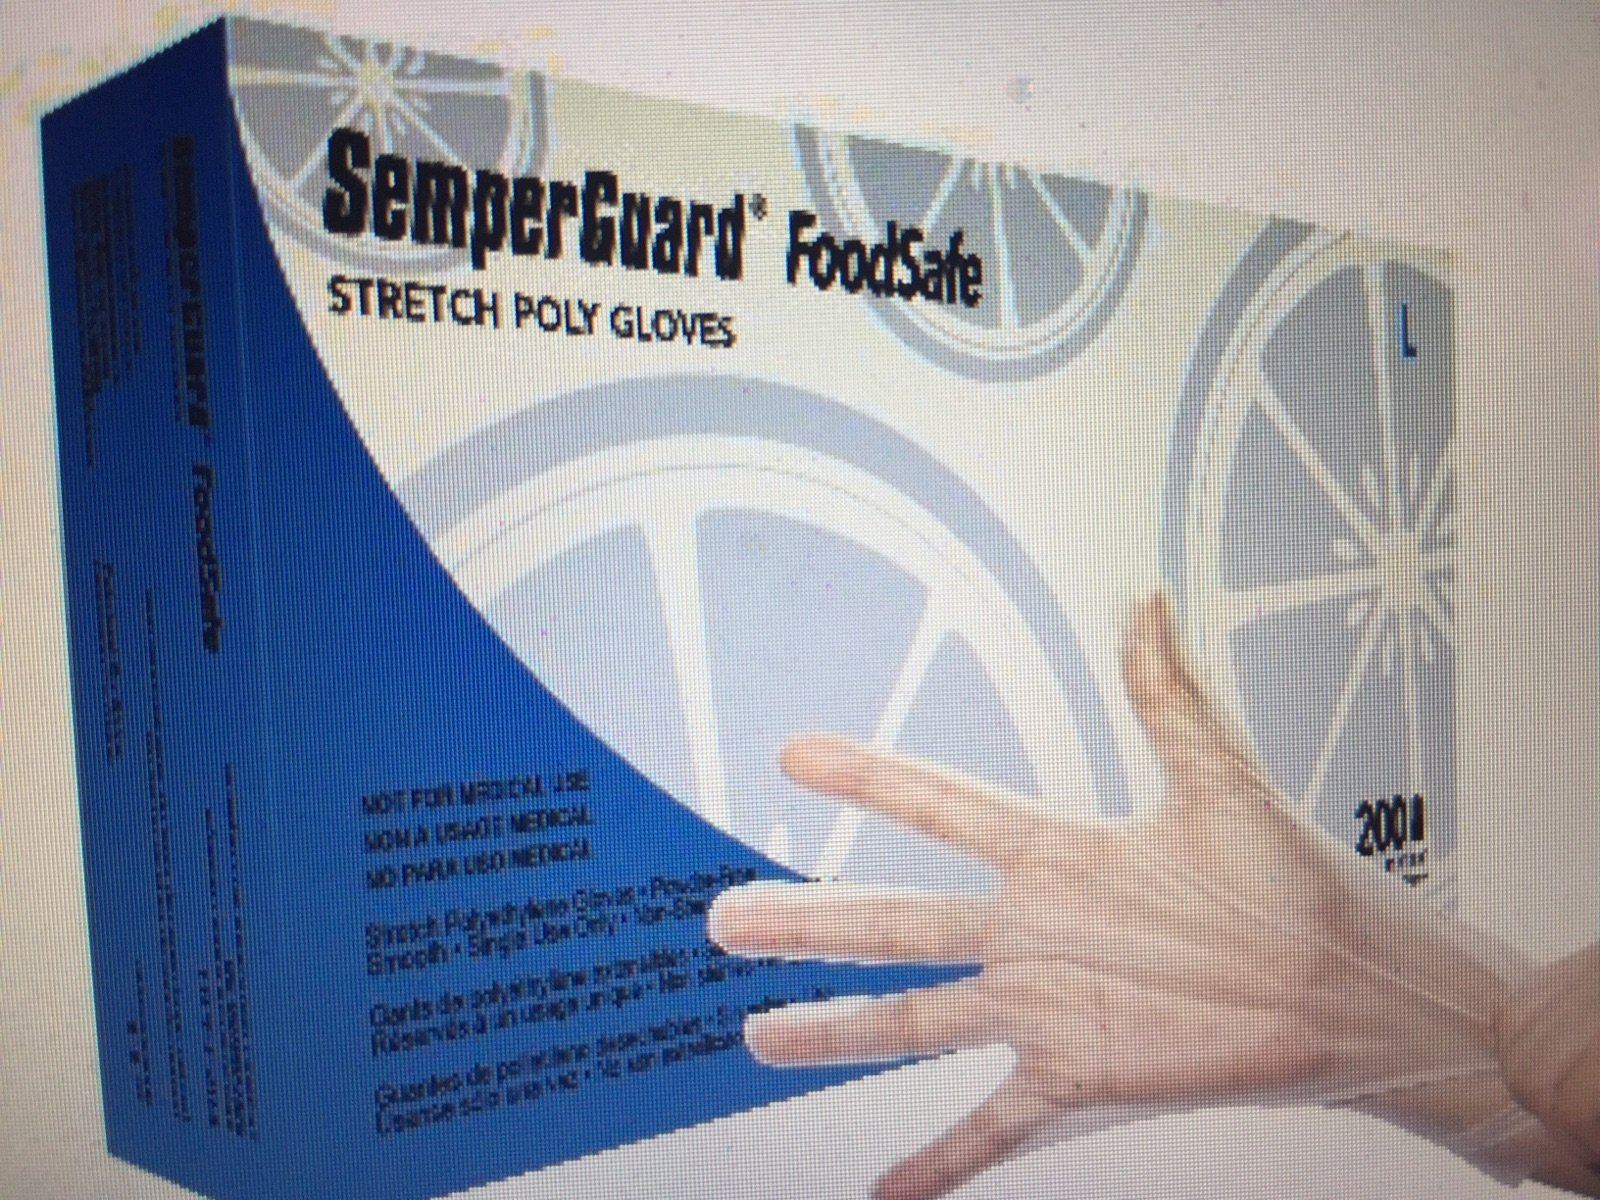 SemperGuard Food Safe Stretch Poly Gloves (10 boxes of 200) X-LARGE by Sempermed